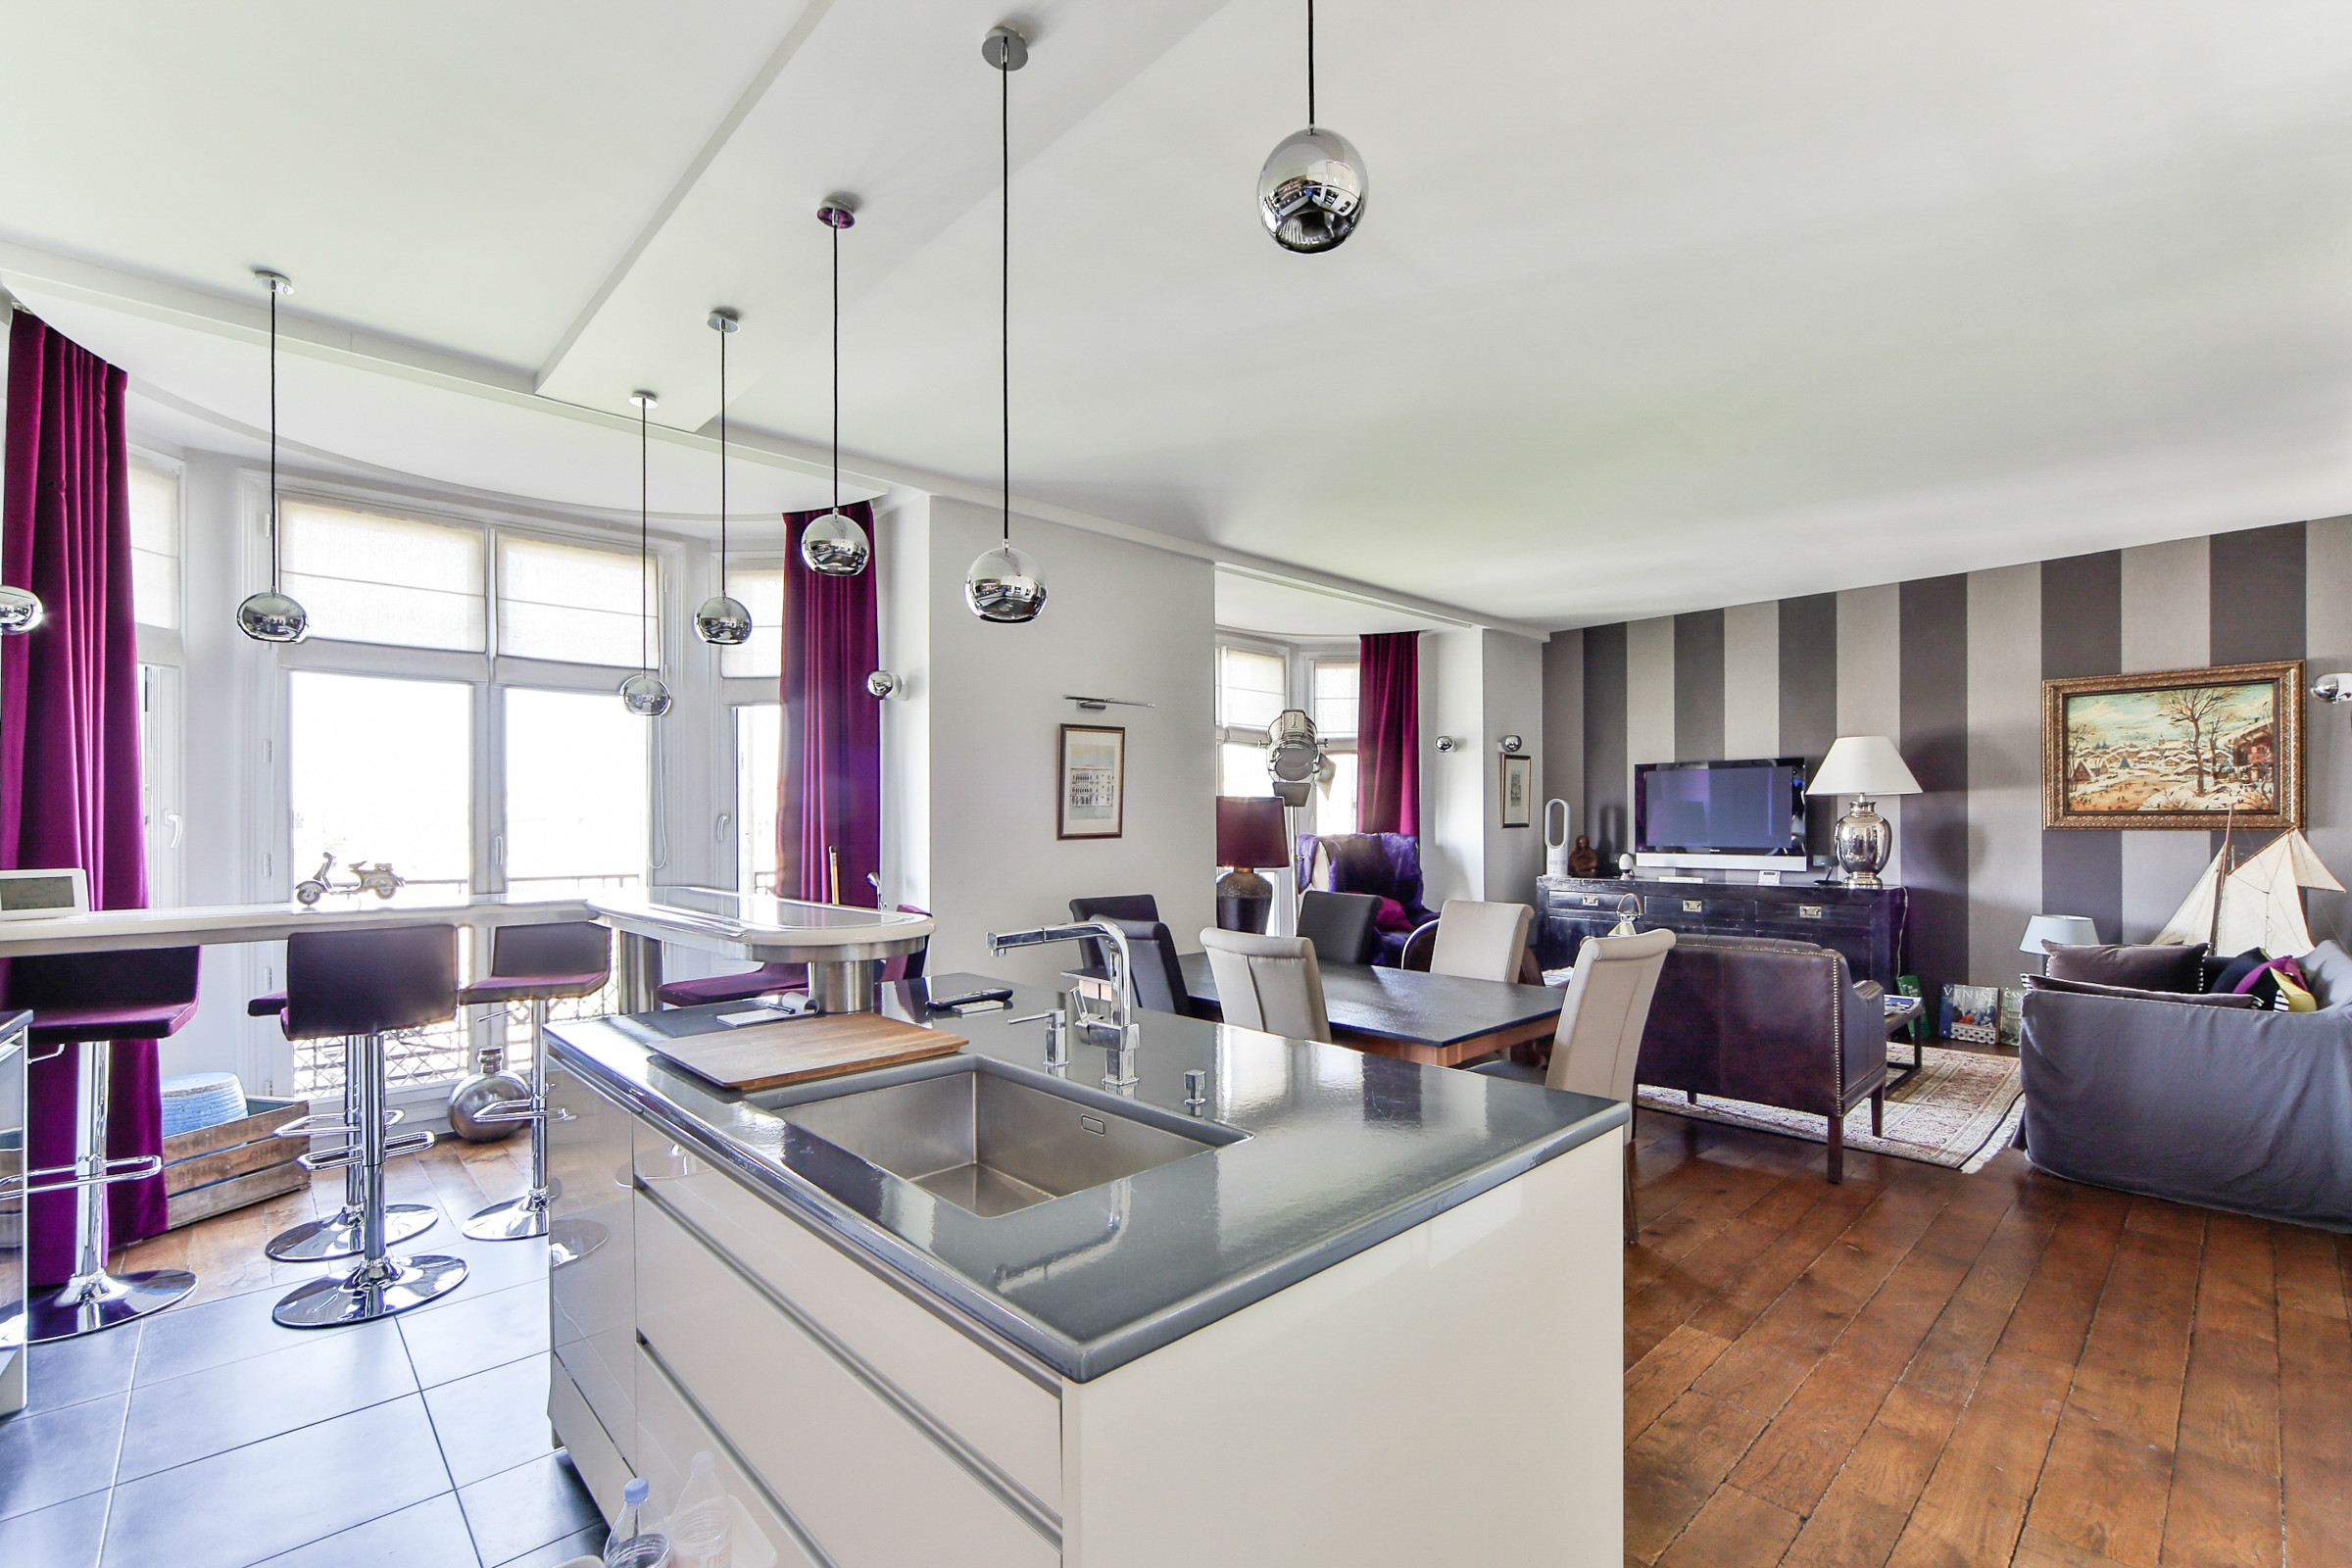 Property For Sale at Neuilly - Sablons. Apartment. Sunny and refurbished.